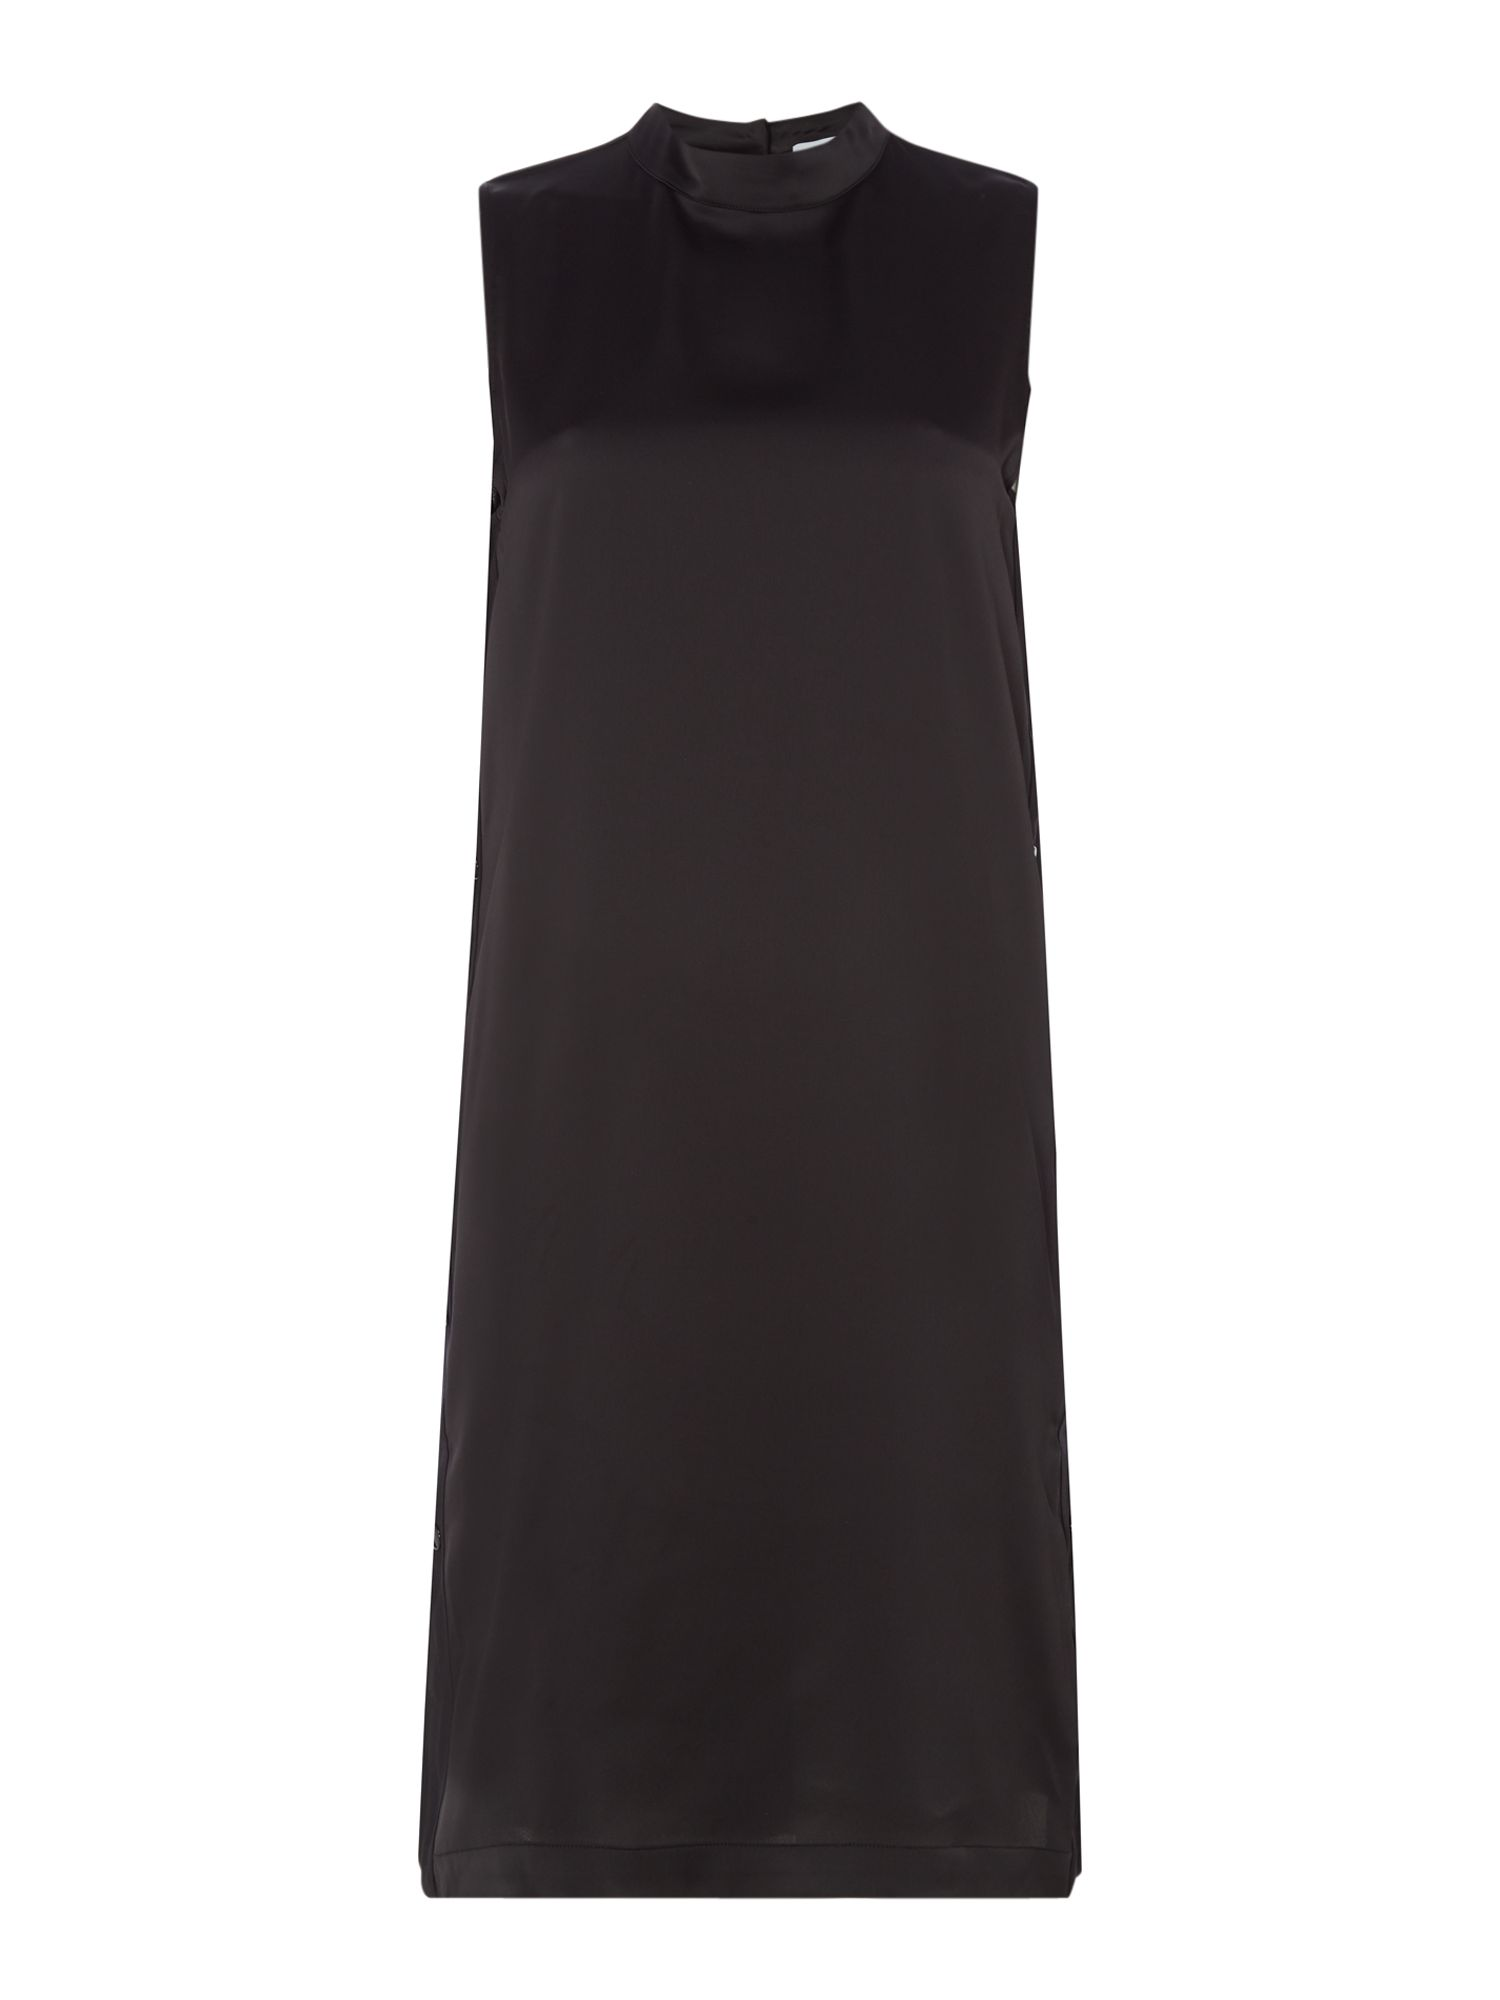 Samsoe and Samsoe lARA SLEEVELESS DRESS WITH SIDE BUTTONS, Black